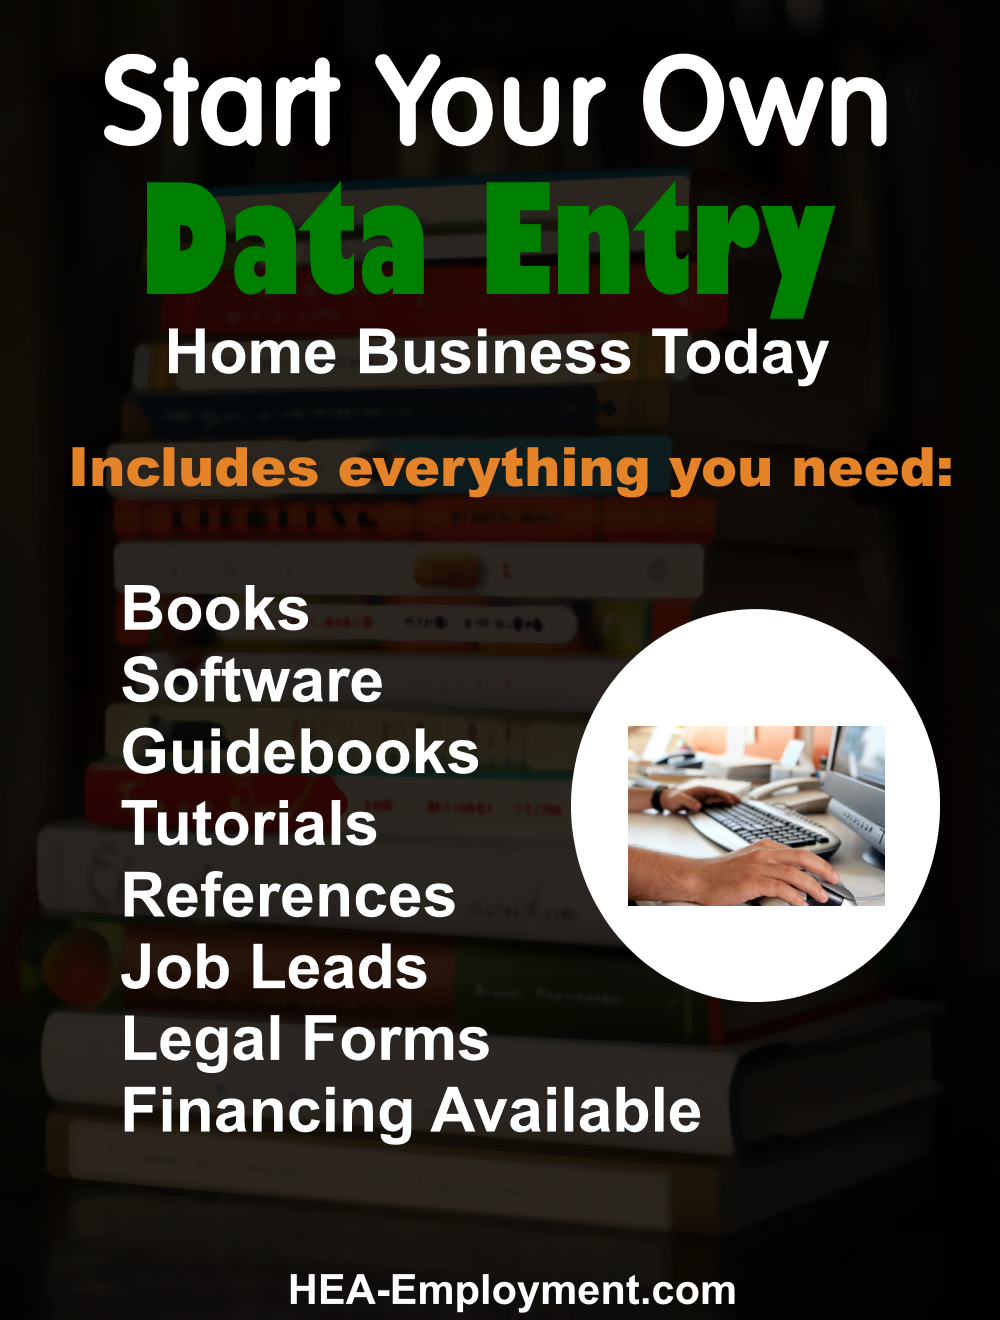 Start your own data entry legitimate home based business. Fully equipped home business package with everything you need to get started. Productivity software, tutorials, guidebooks, references, manuals, tax advice and legal forms are included with each kit. Be your own boss!